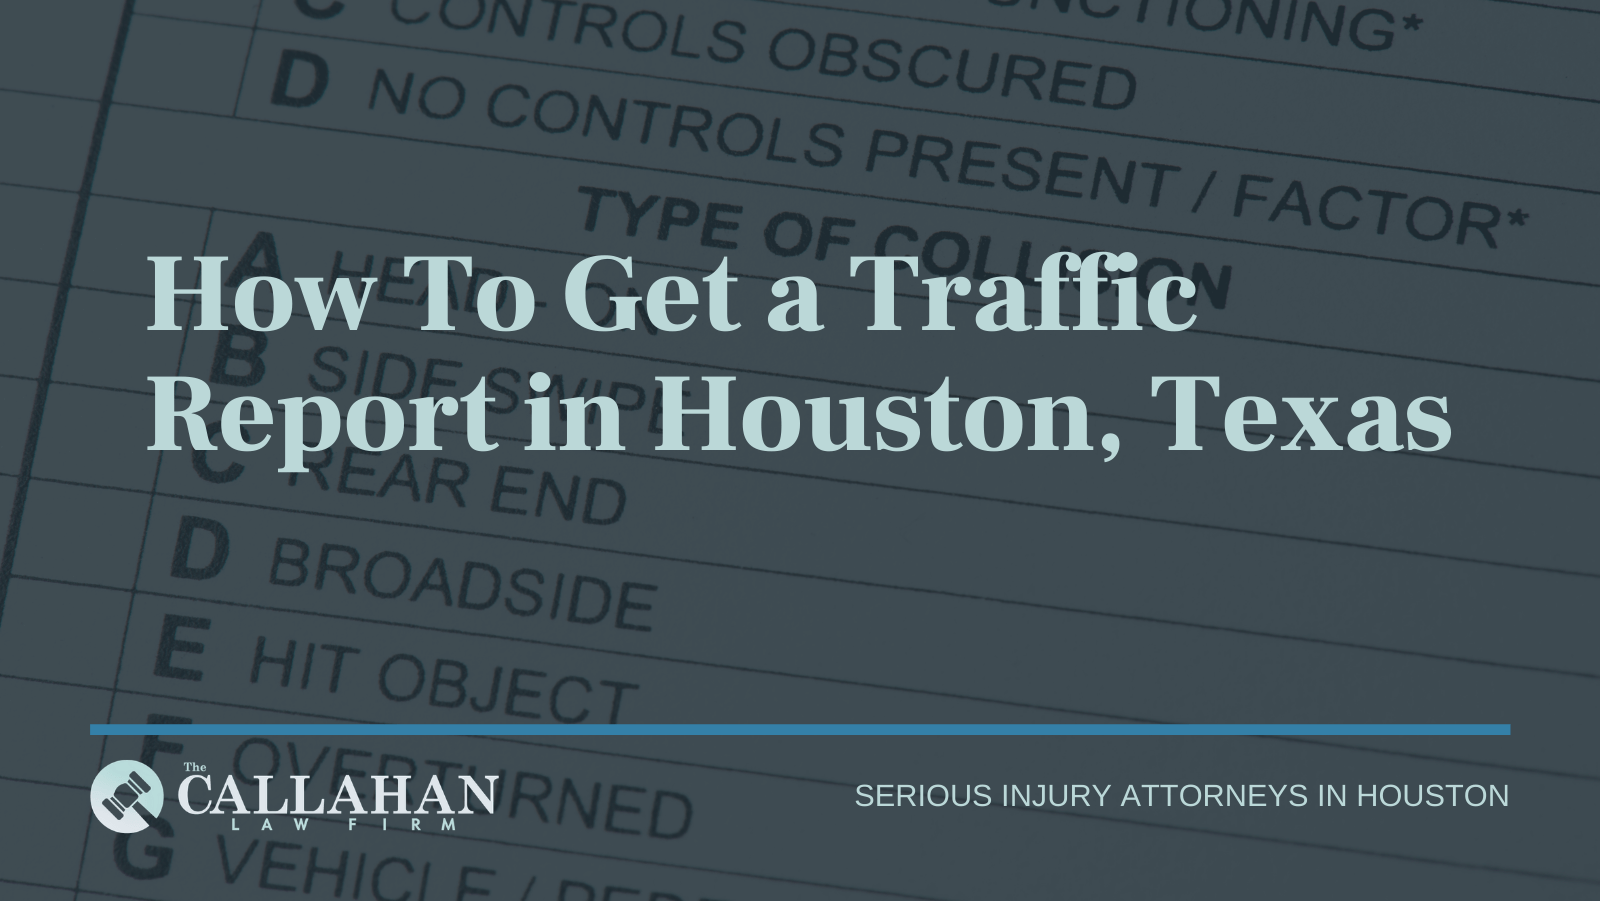 How To Get a Traffic Report in Houston, Texas- houston texas - injury attorney